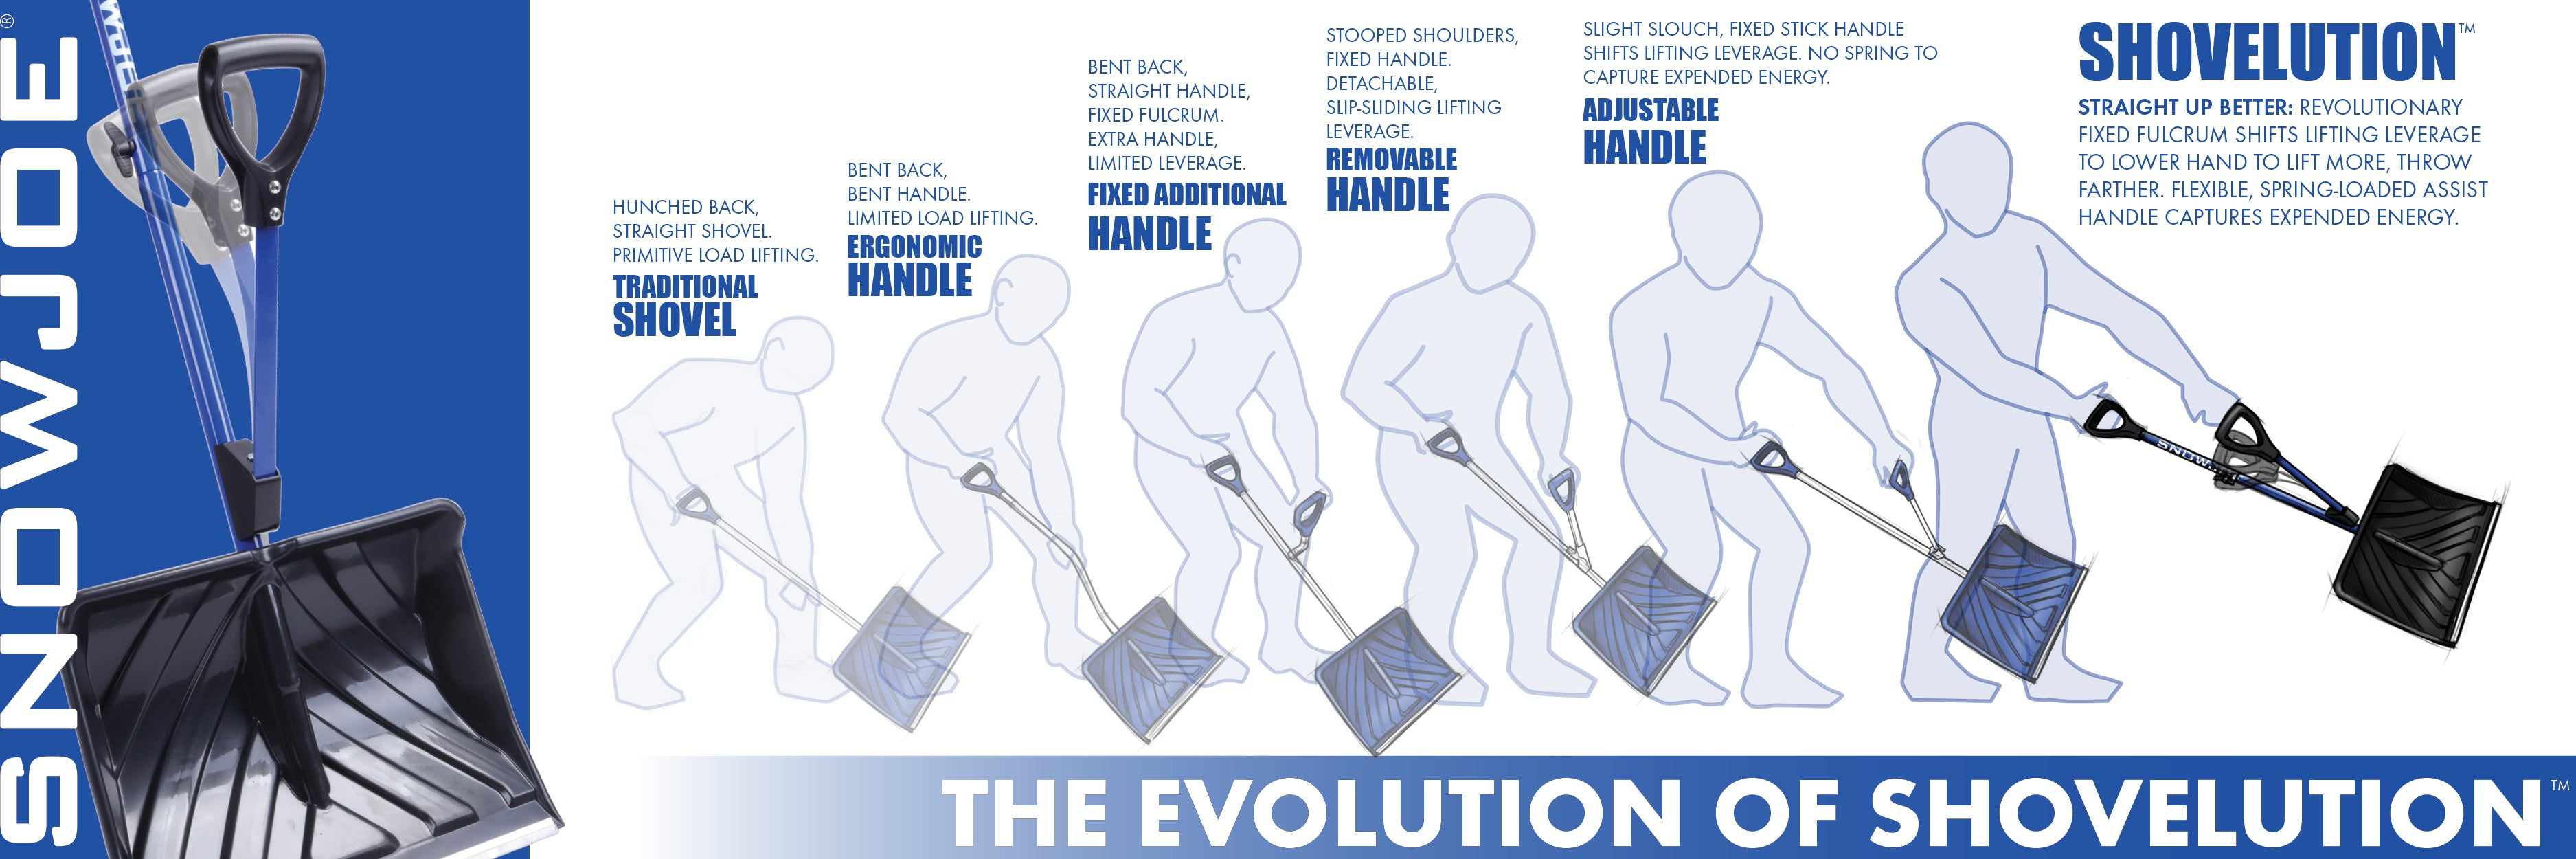 evolution-of-shovelution